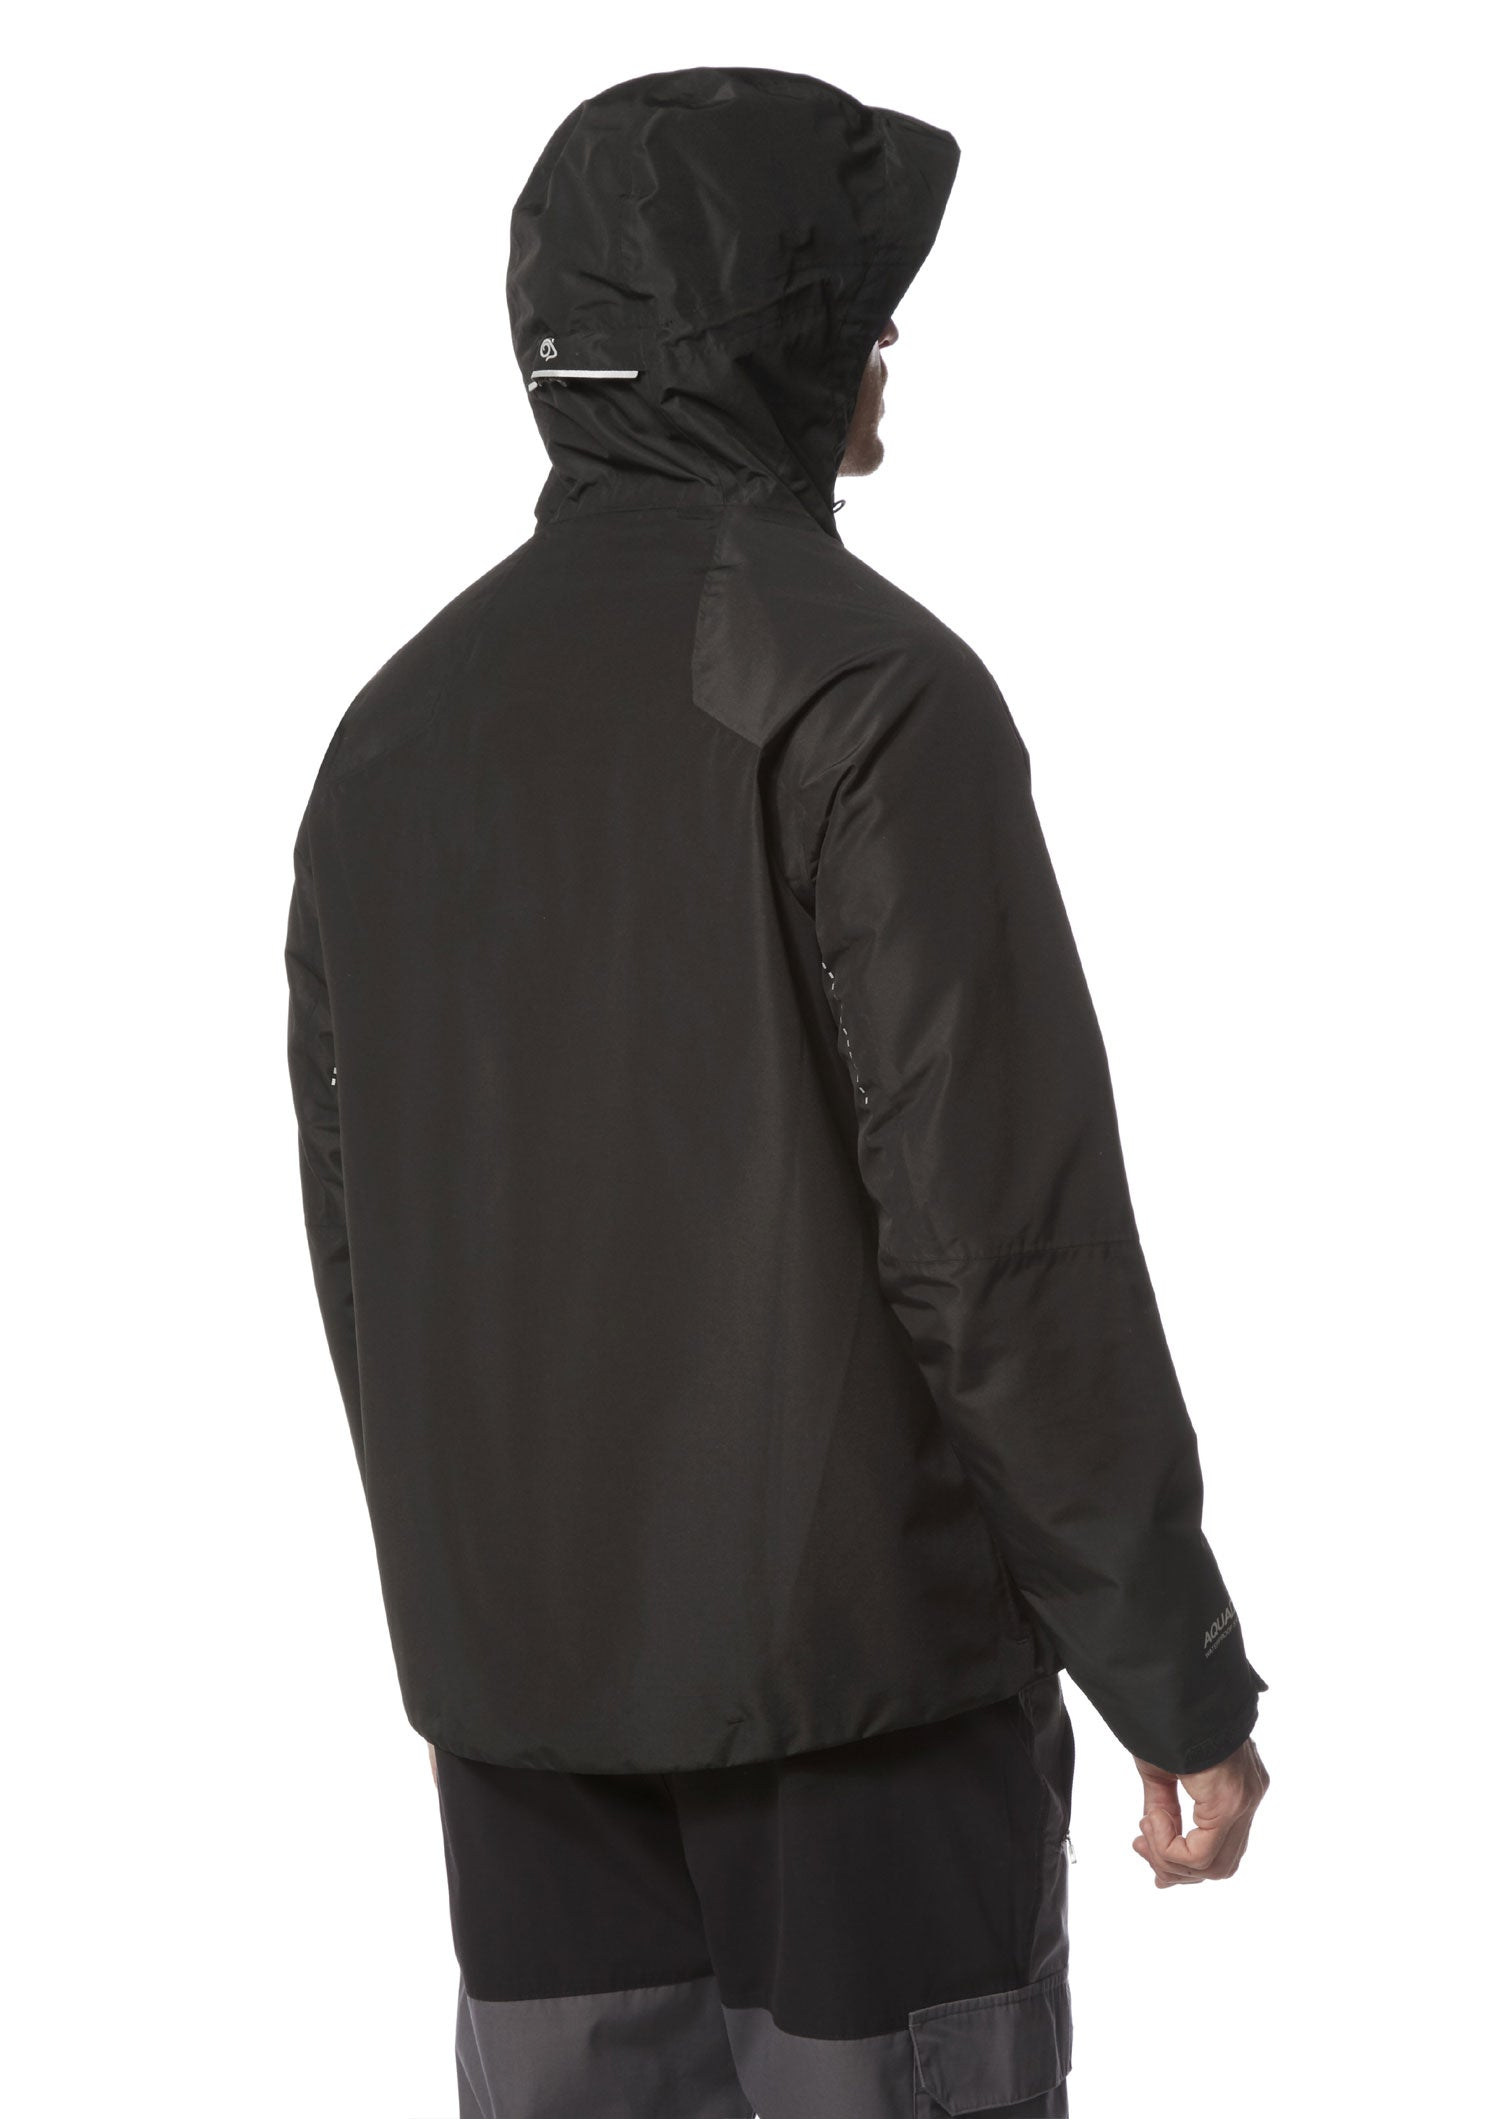 Back view Craghoppers Horizon Jacket | Black